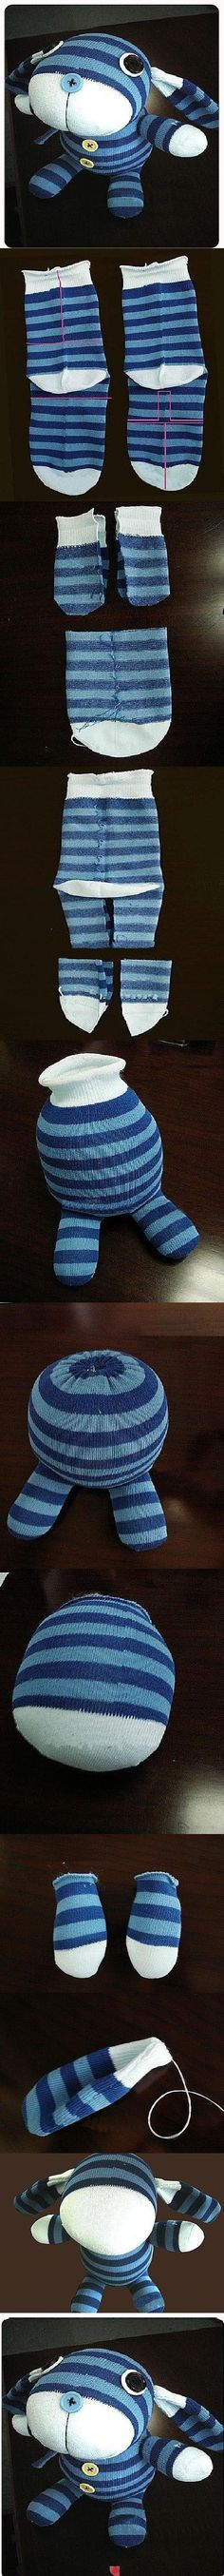 (Good ideas for sock puppets) DIY Fantasy Sock Doll DIY Fantasy Sock Doll Sewing Toys, Sewing Crafts, Sewing Projects, Diy Projects, Sock Crafts, Diy Crafts, Doll Patterns, Sewing Patterns, Diy For Kids